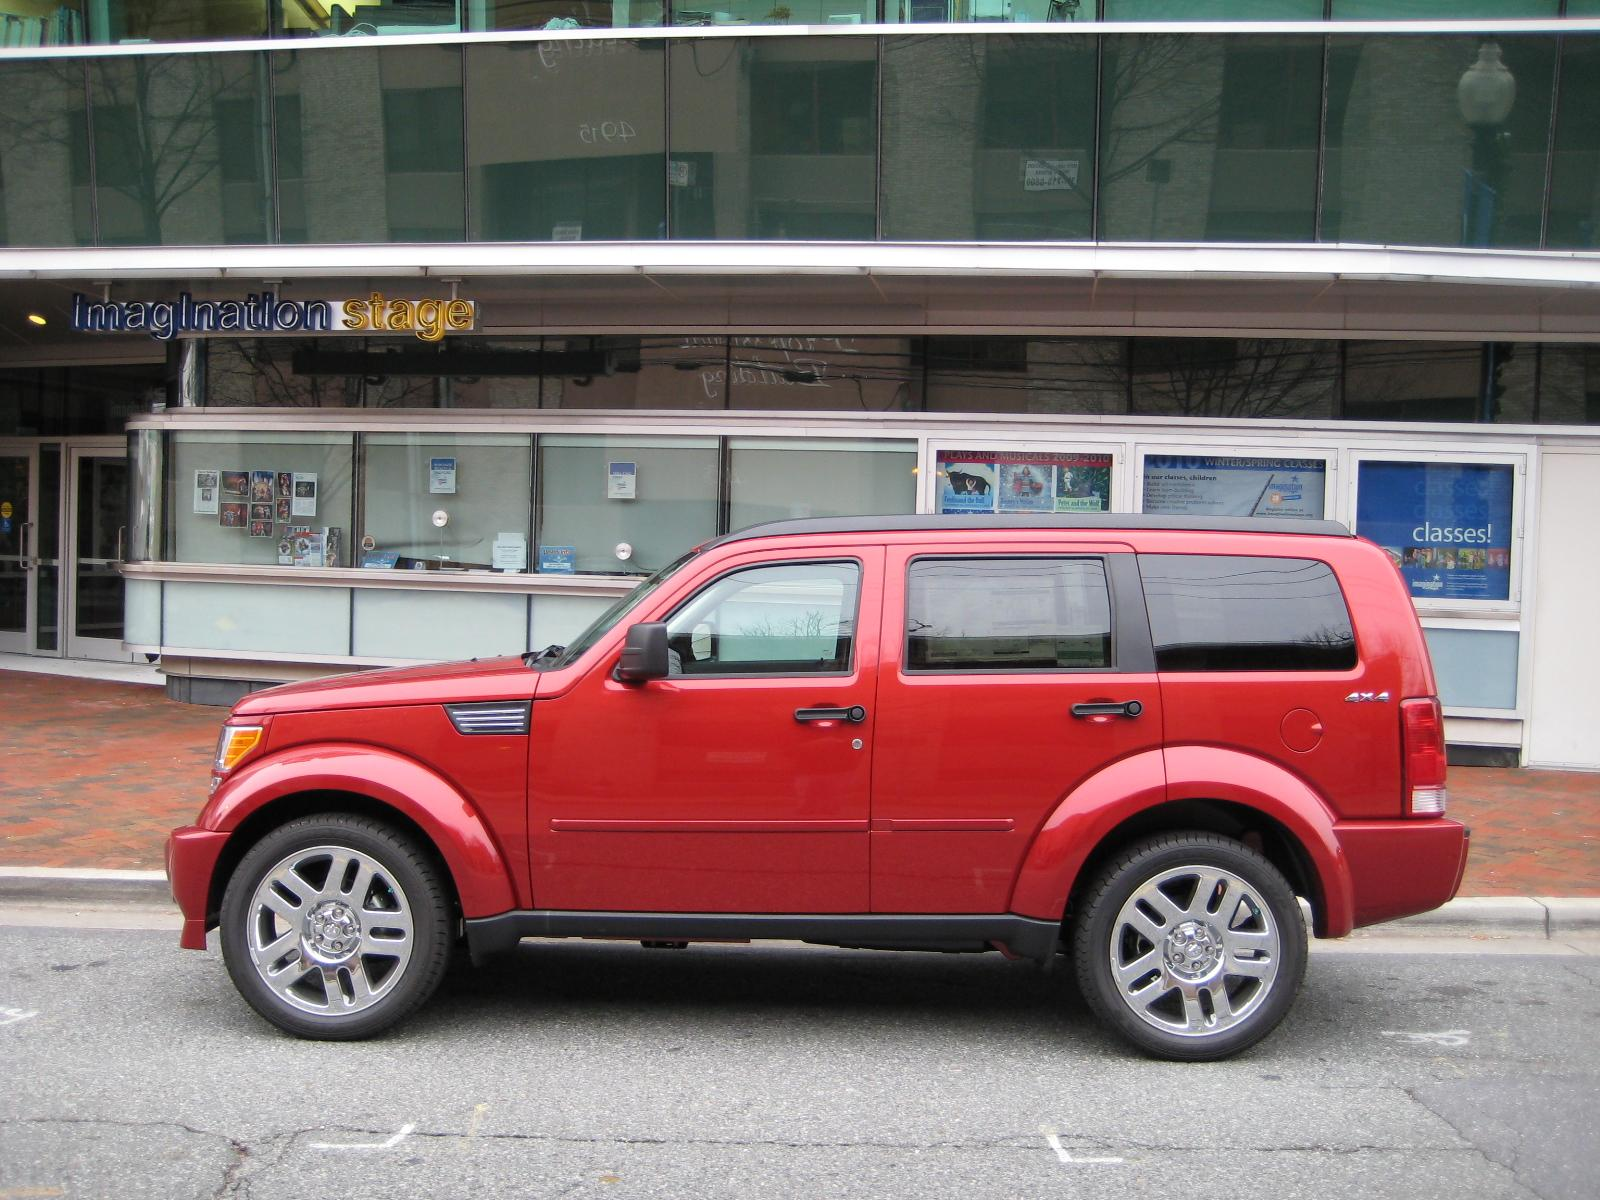 2010 Dodge Nitro Information And Photos Zombiedrive 2011 Wiring Diagram 800 1024 1280 1600 Origin